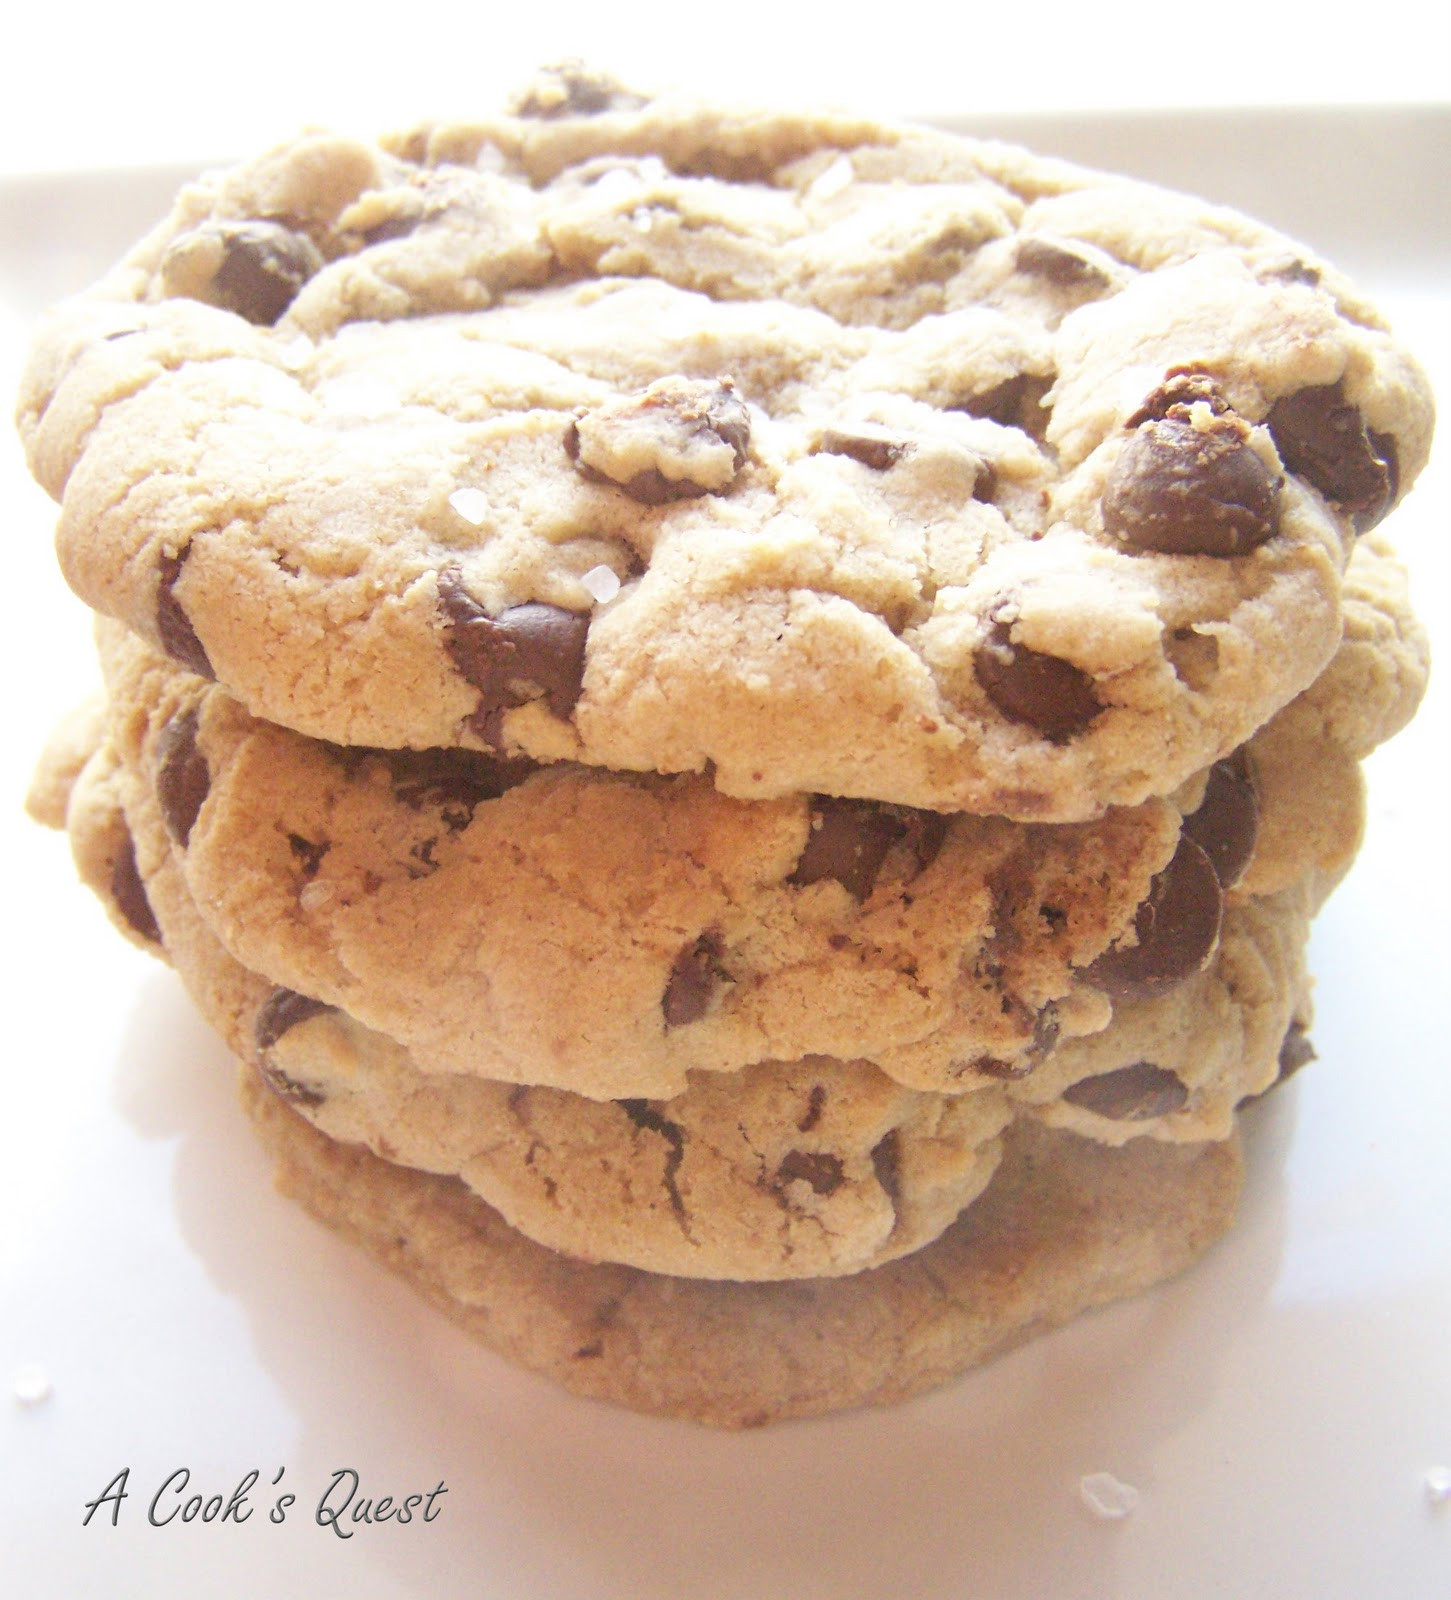 Chewy Chocolate Chip Cookies Recipe  A Cook s Quest Thick and Chewy Chocolate Chip Cookies